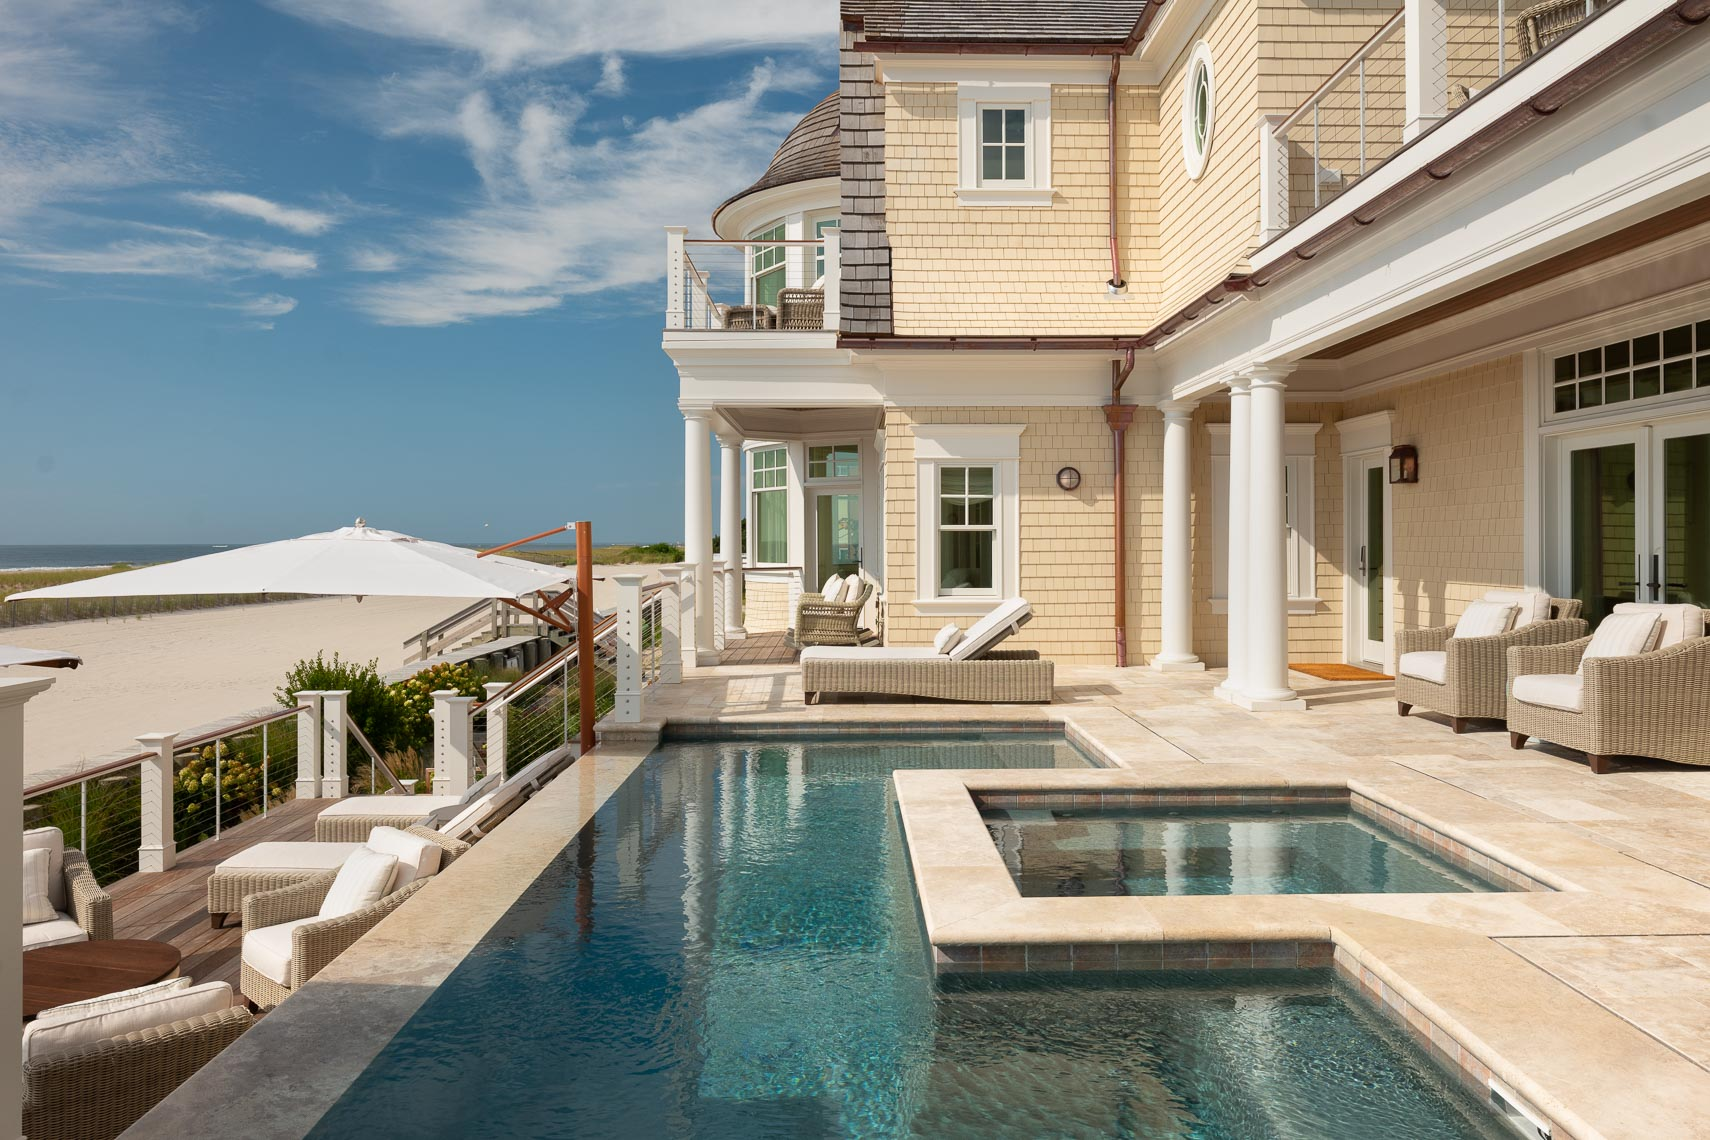 Shore Home - New Jersey Architectural Photographer